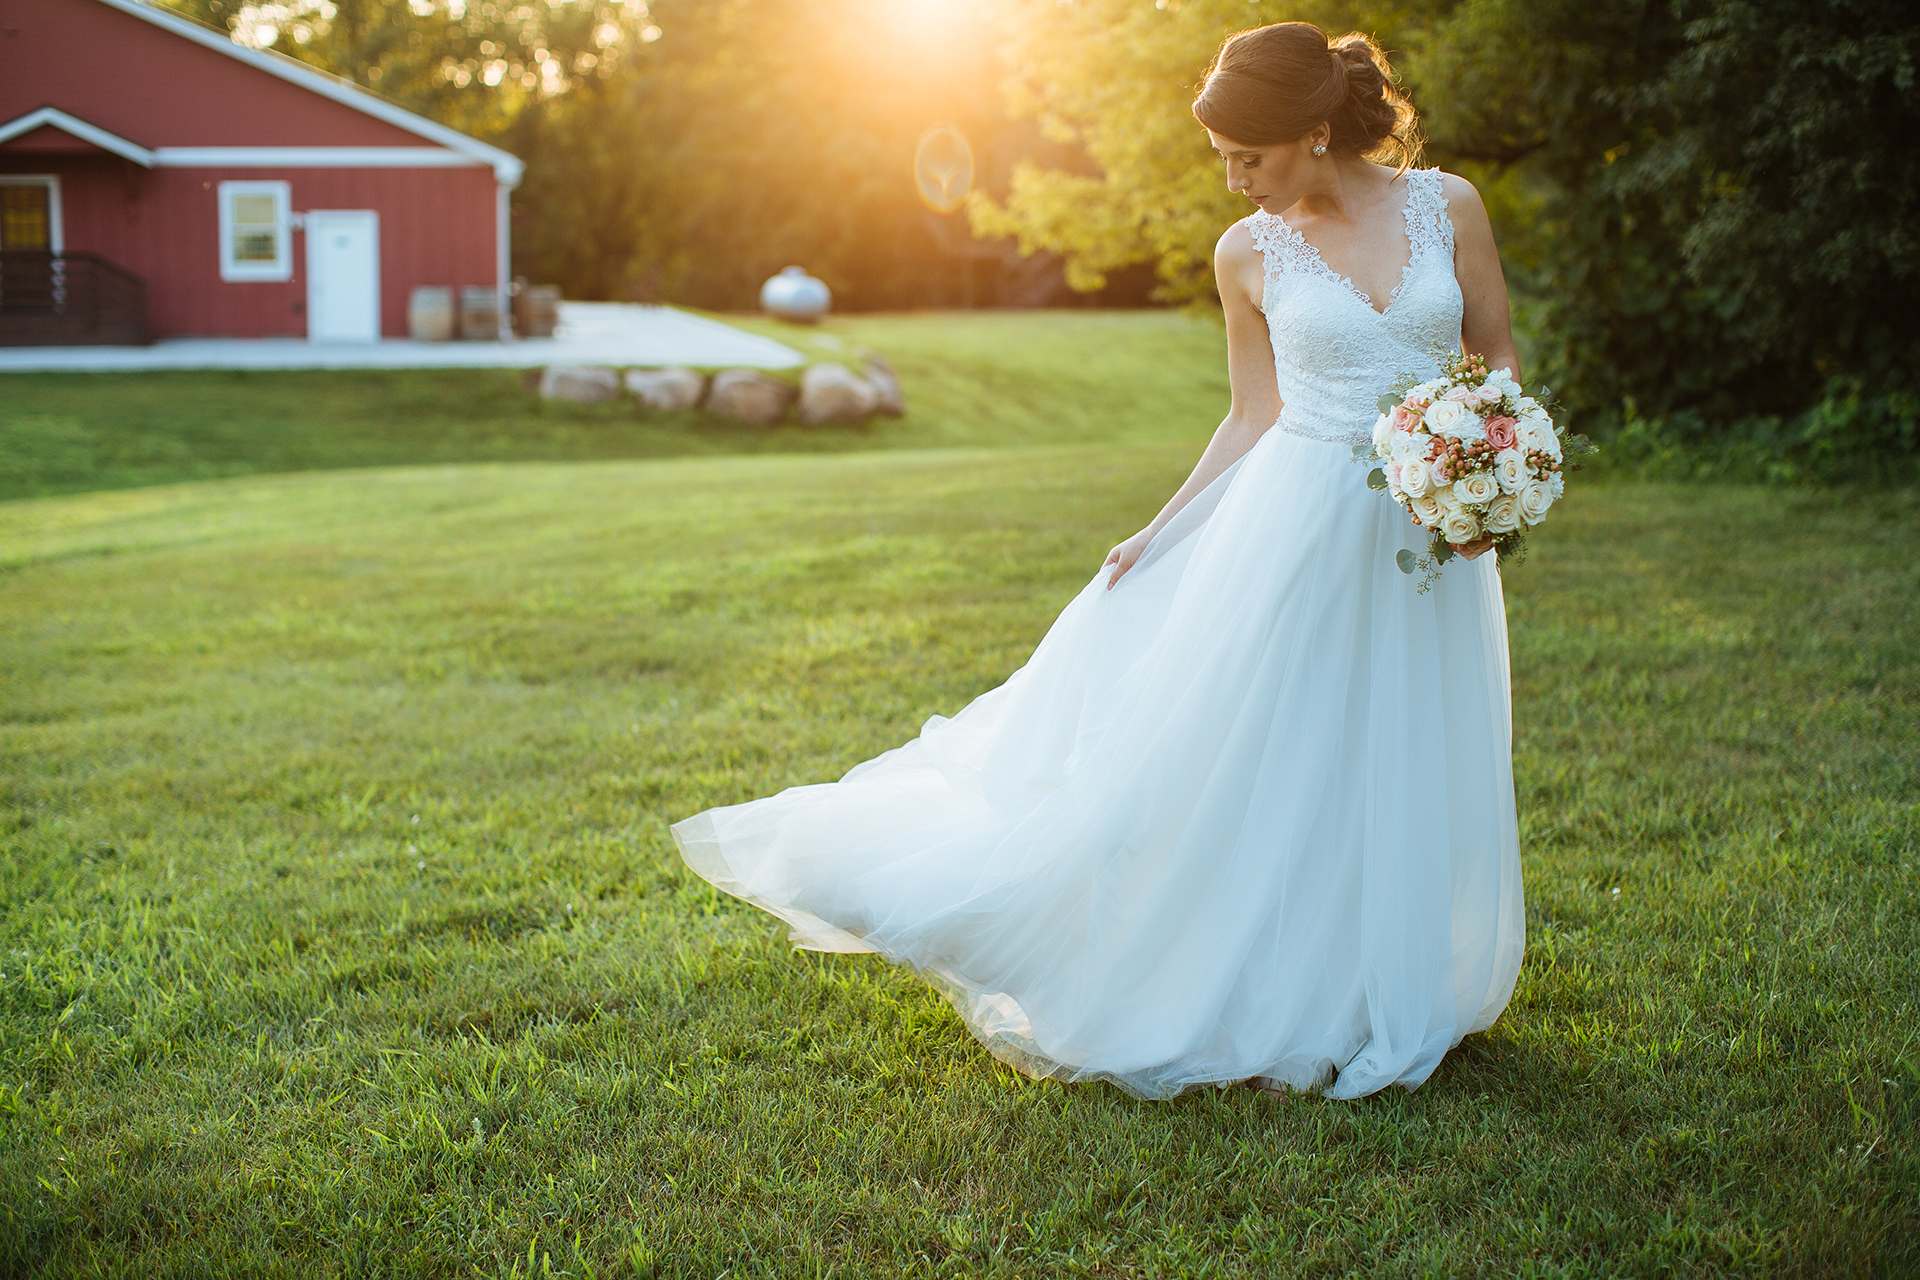 Alyssa Lee Minneapolis Wedding Photographer | Sixpence Standard wedding blog | bride dancing with her dress in a field